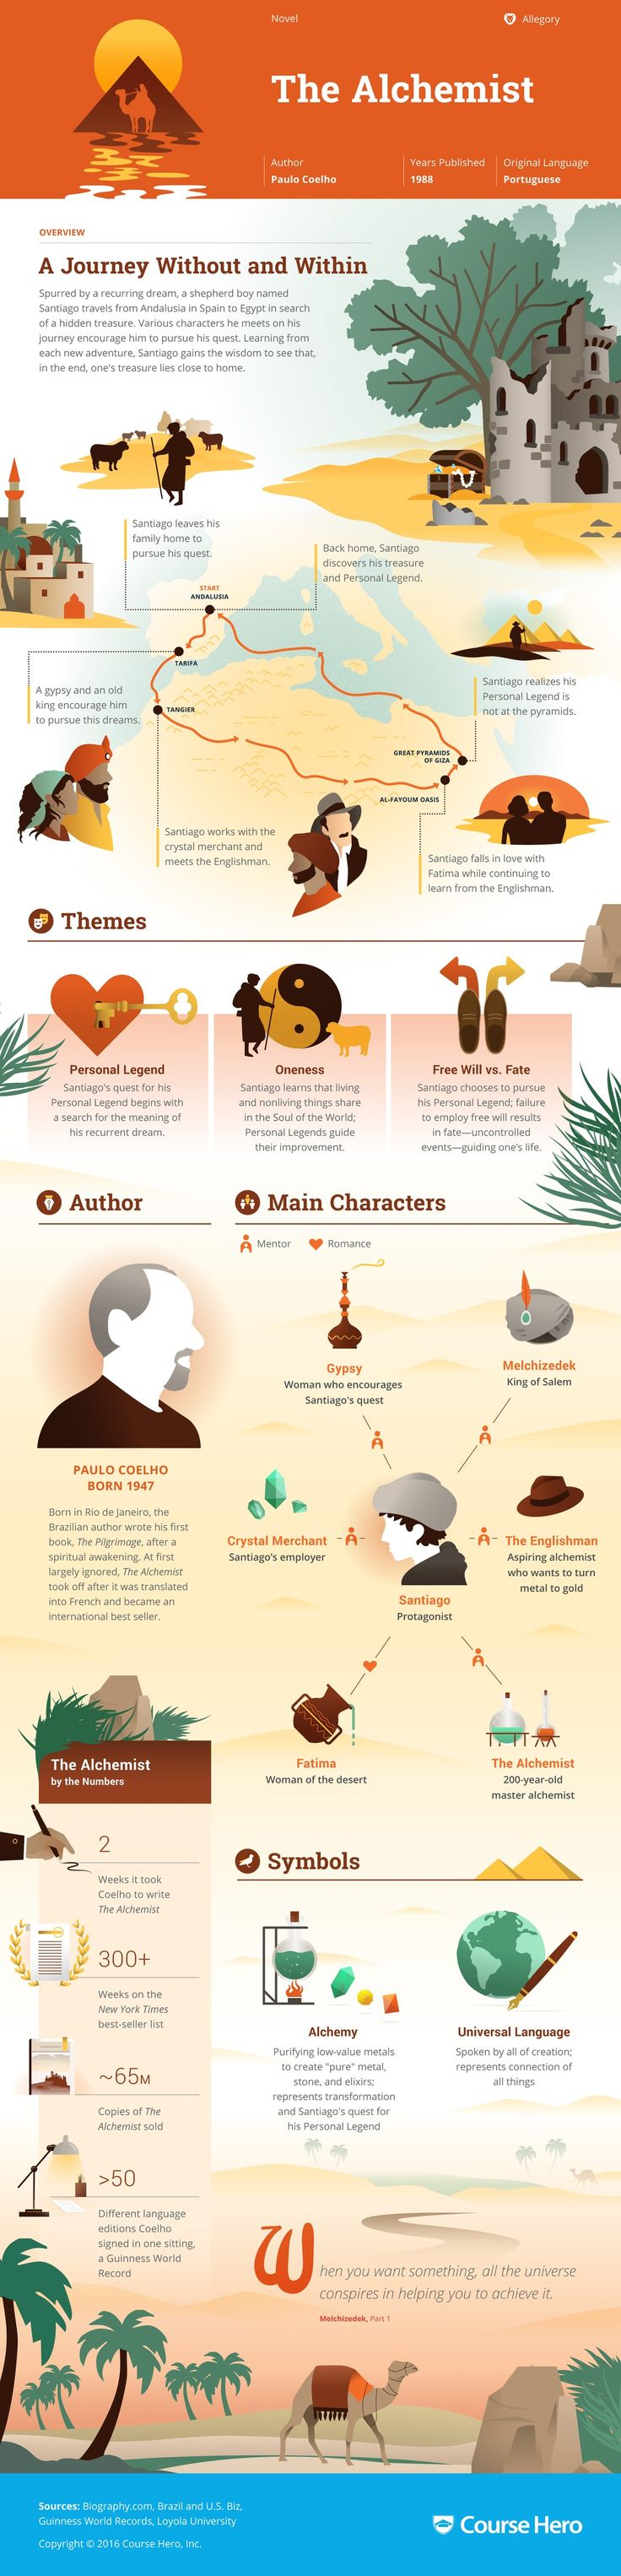 best ideas about the alchemist movie the study guide for paulo coelho s the alchemist including part summary character analysis and more learn all about the alchemist ask questions